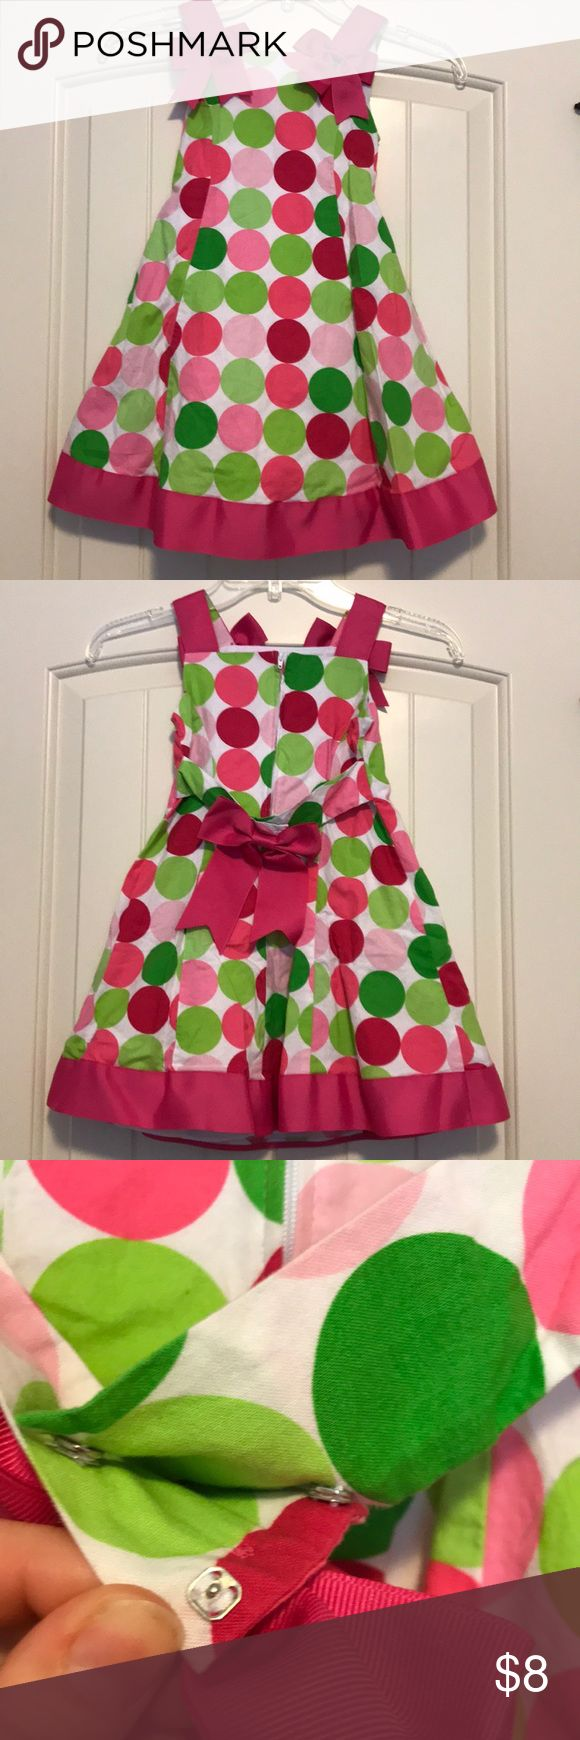 "VGUC Pink and Green Toddler Dress This is a beautiful pink and green toddler dress. I have classified this dress as ""very good"" and not ""excellent"" because there is one eye from the hook and eyes on the bow missing (picture included). This dress has no stains and is in great condition. Bonnie Jean Dresses Casual"